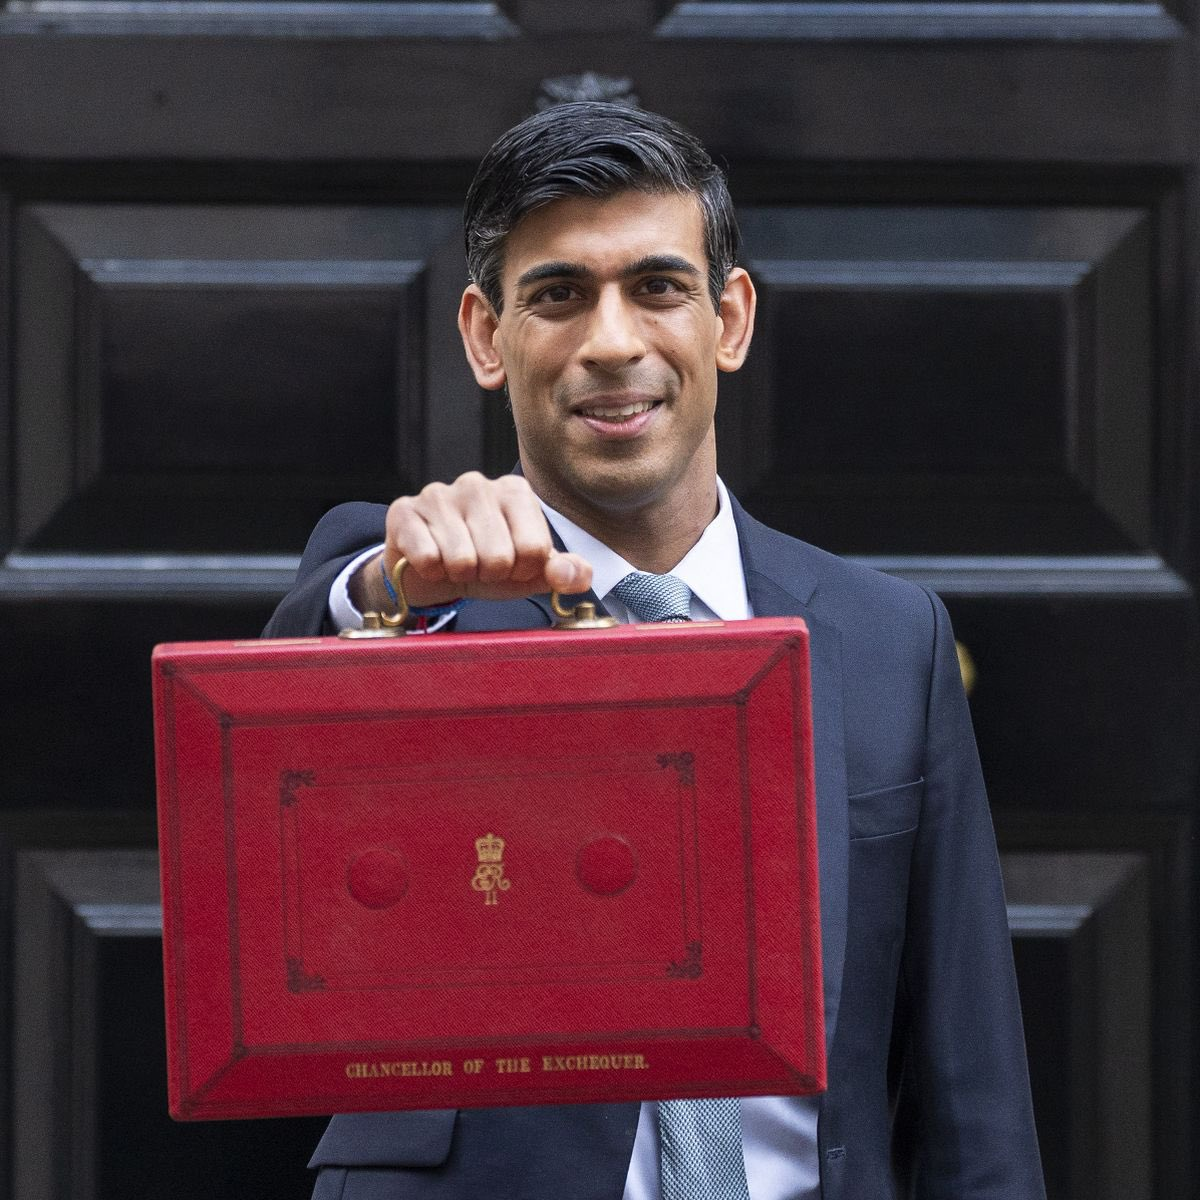 𝙎𝙩𝙖𝙢𝙥 𝘿𝙪𝙩𝙮 𝙀𝙭𝙩𝙚𝙣𝙙𝙚𝙙 🙌  Great news for property investors as Chancellor Rishi Sunak will next week announce a three month extension on the stamp duty holiday until the end of June.  Read more -